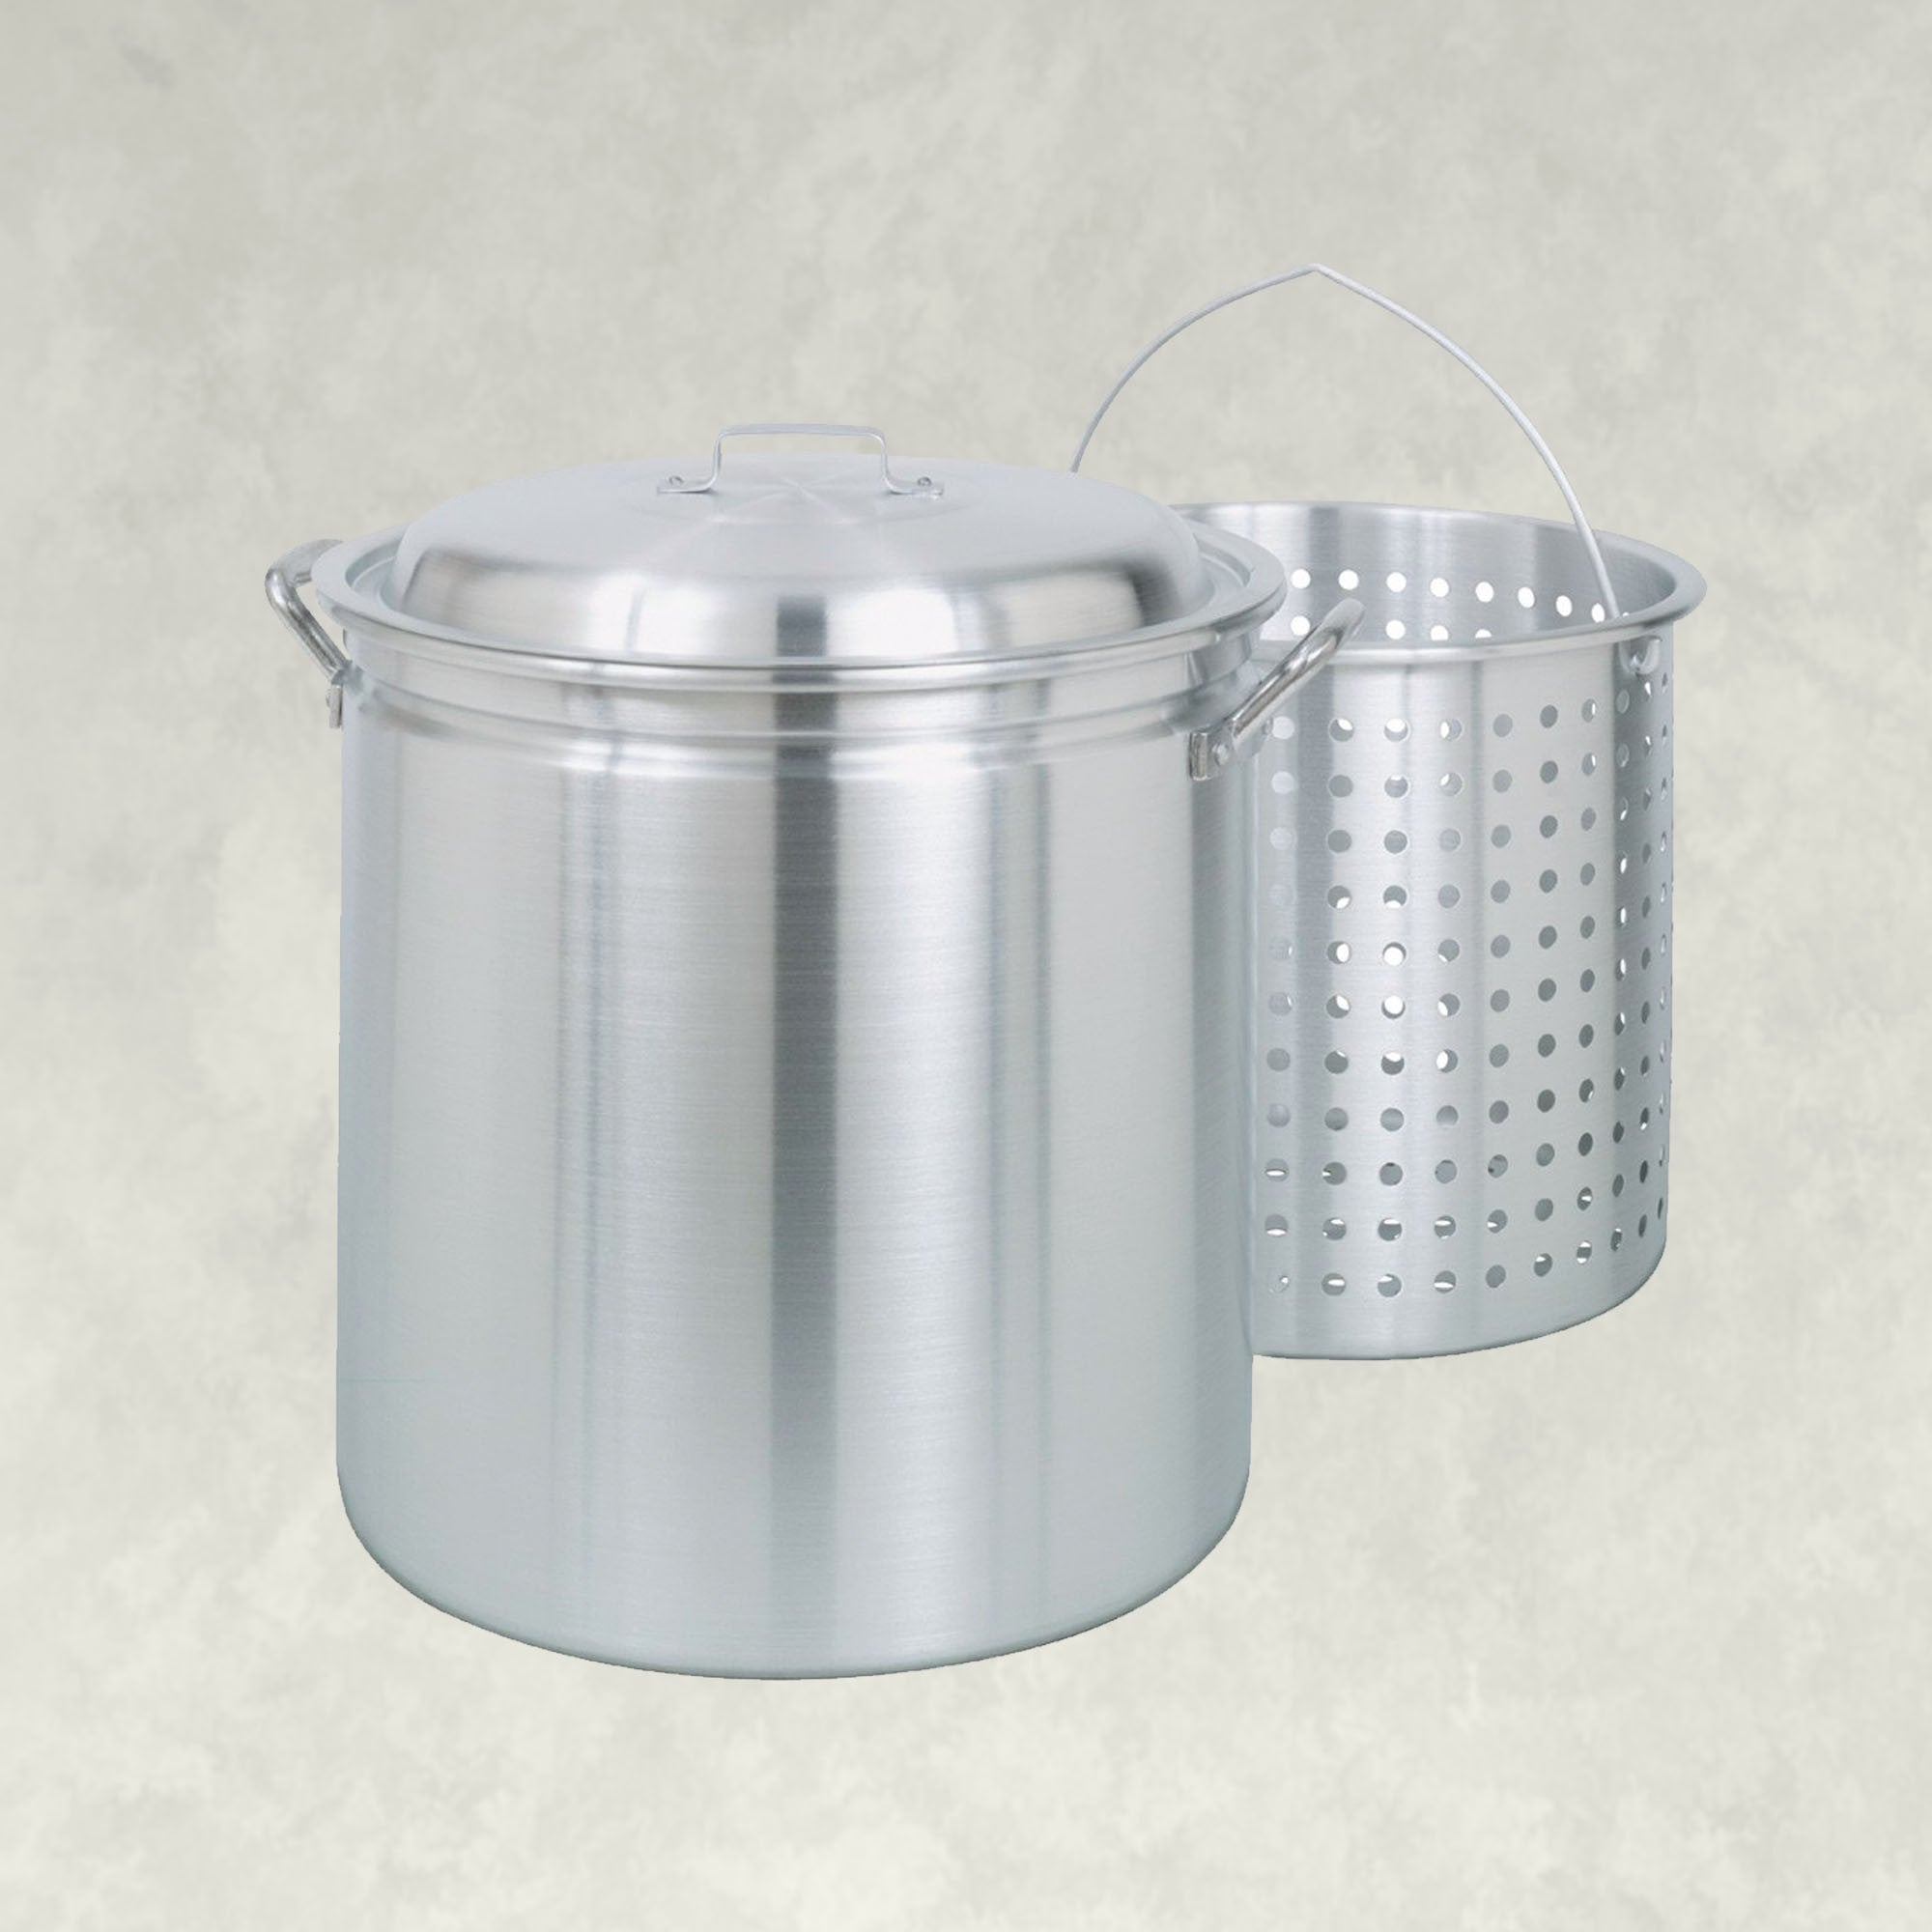 42-qt Stockpot with Basket